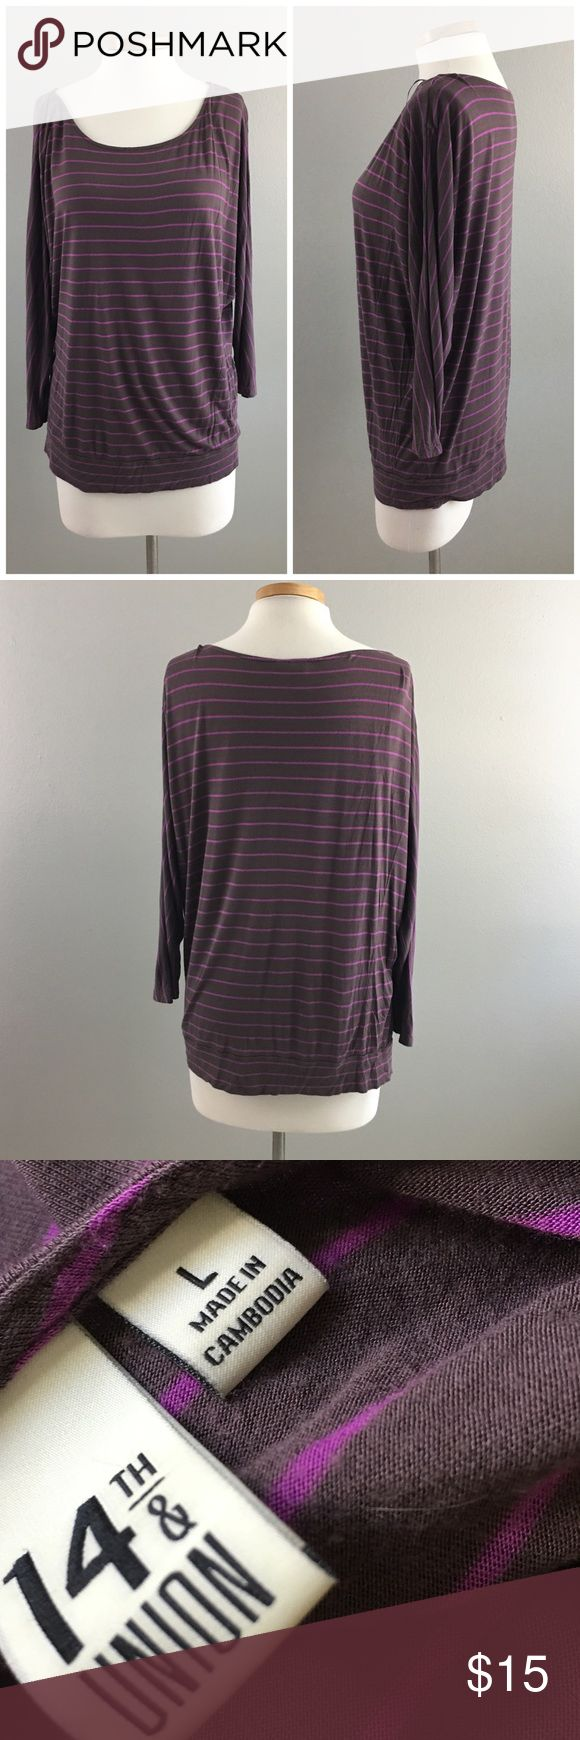 14th & Union Grey Purple Striped Dolman Top 14th & Union Grey Purple Striped Dolman Top. Size large. Thank you for looking at my listing. Please feel free to comment with any questions (no trades/modeling).  •Fabric: 100% Viscose  •Condition: VGUC, no holes or satins.   25% off all Bundles or 3+ items! Reasonable offers welcome. Visit me on INSTA @reupfashions. JA 14th & Union Tops Blouses